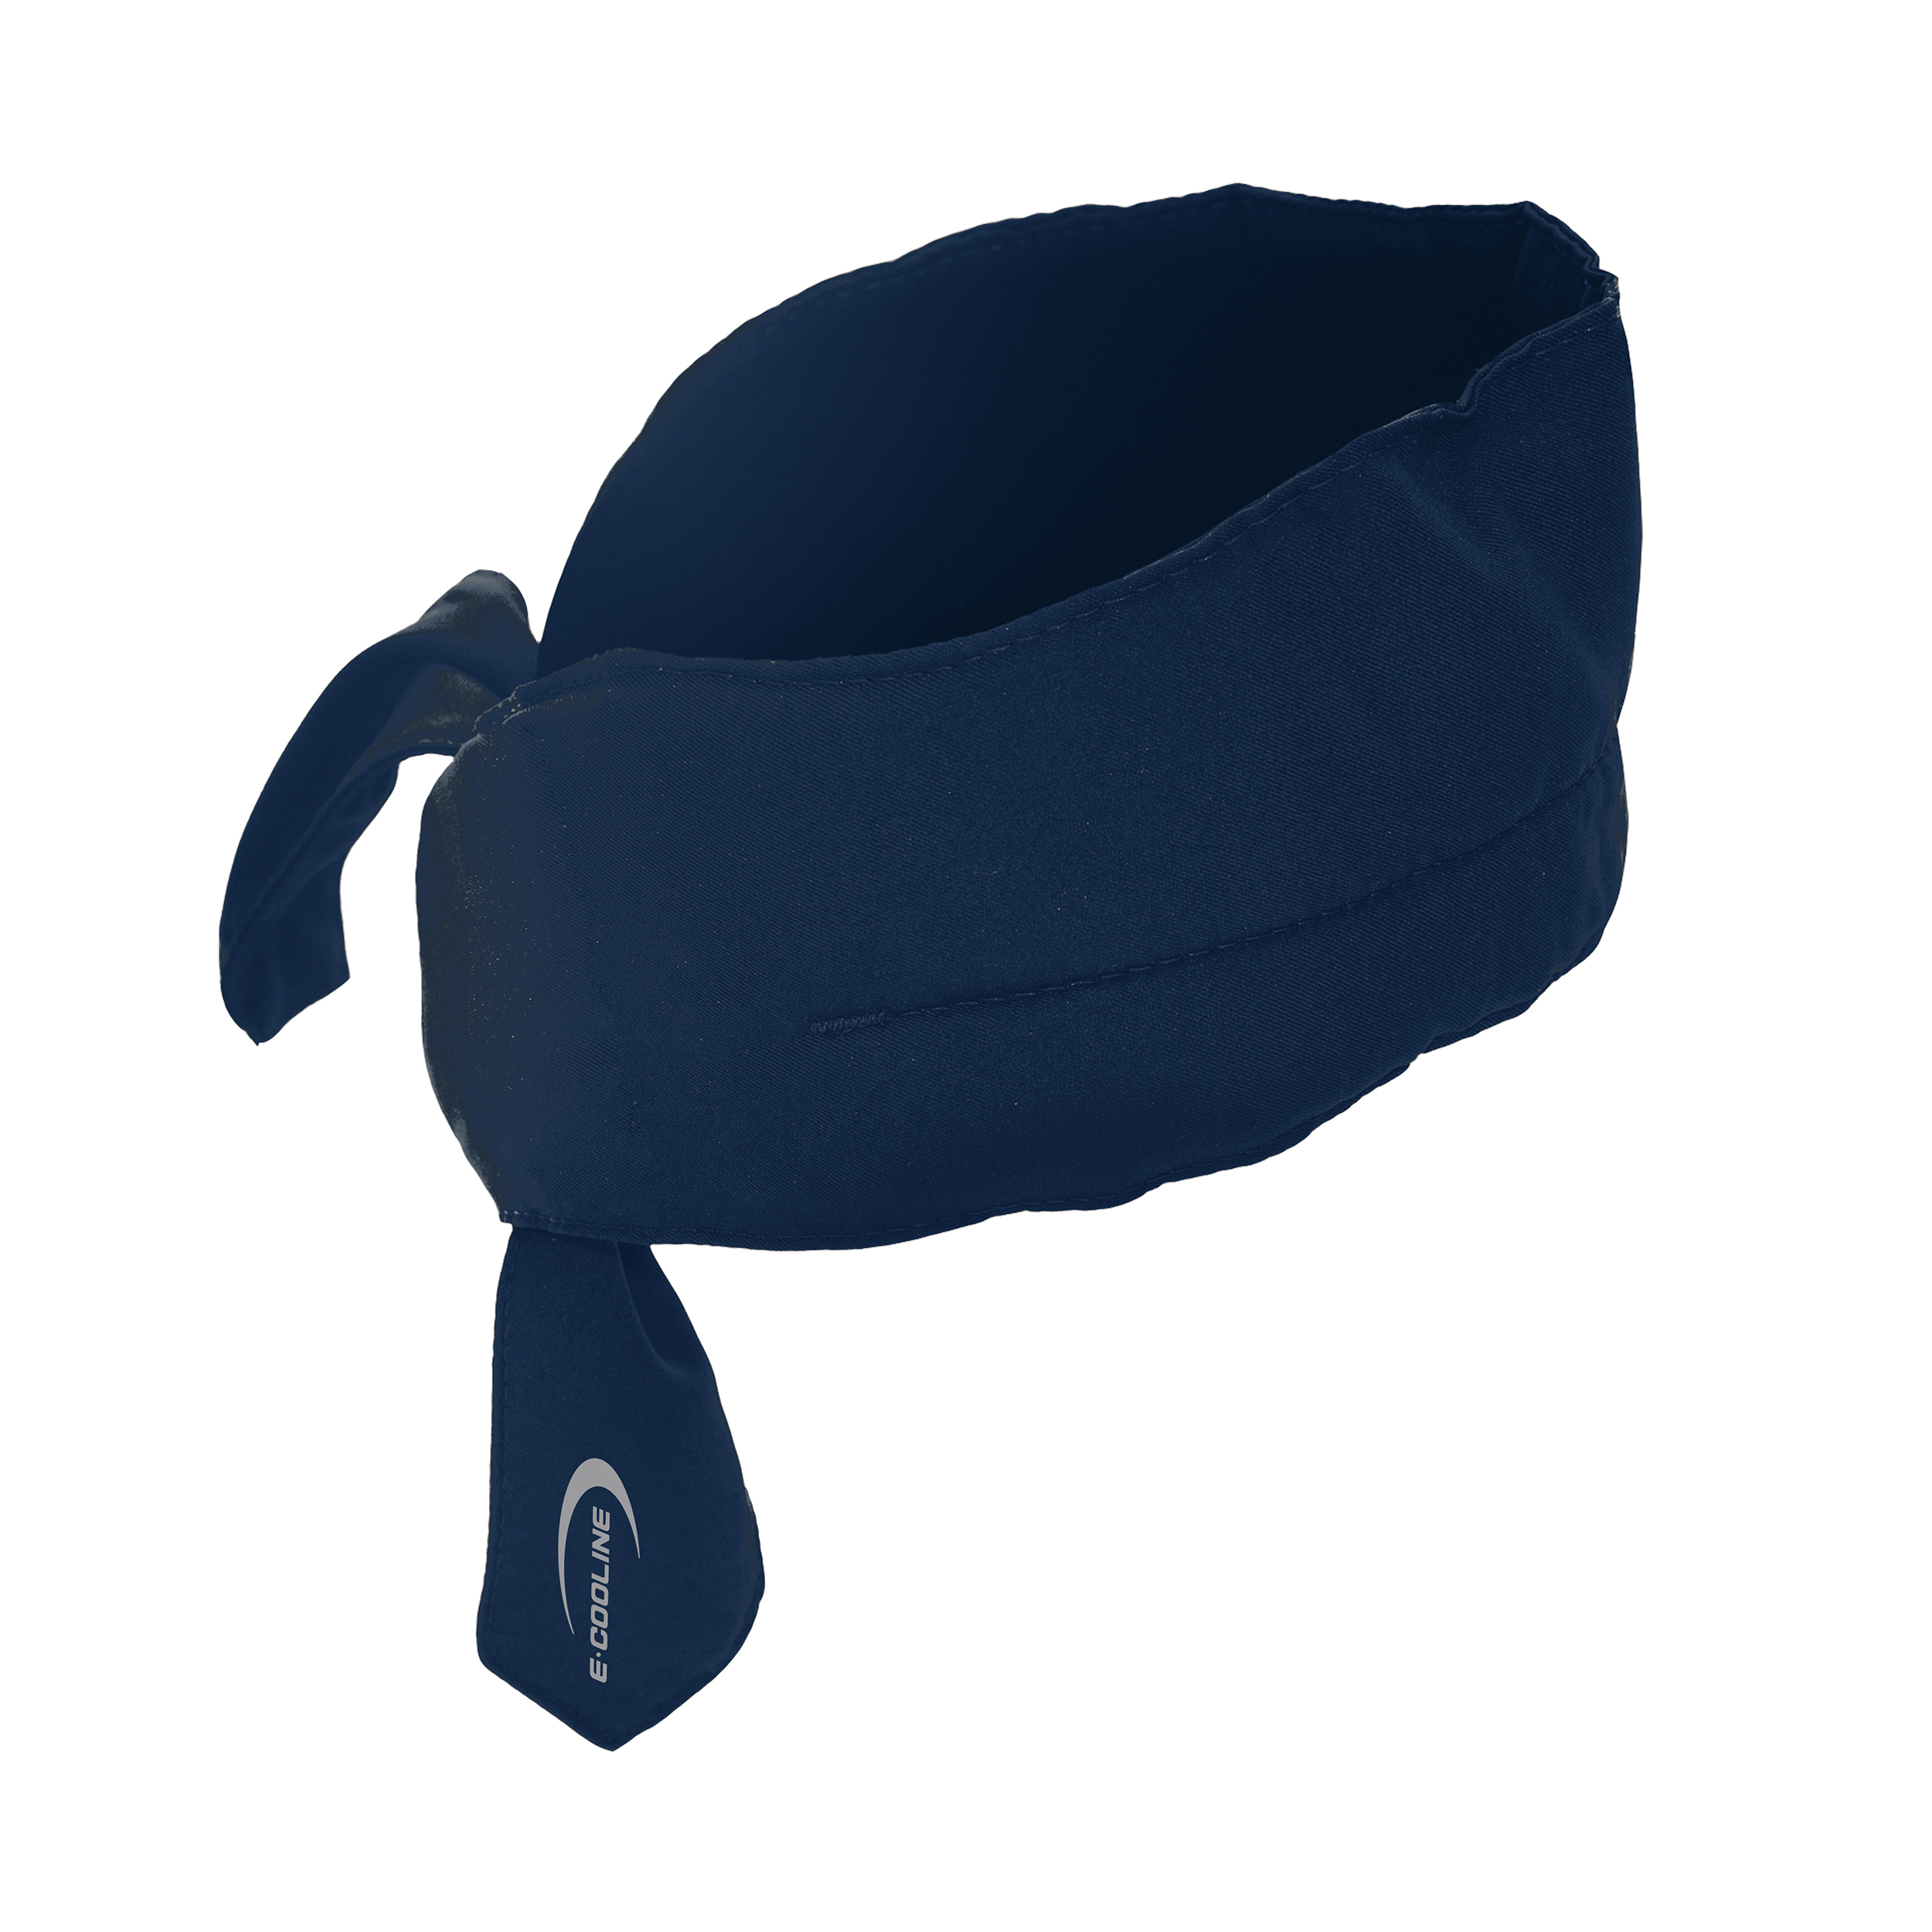 Powercool-SX3-collar for more health